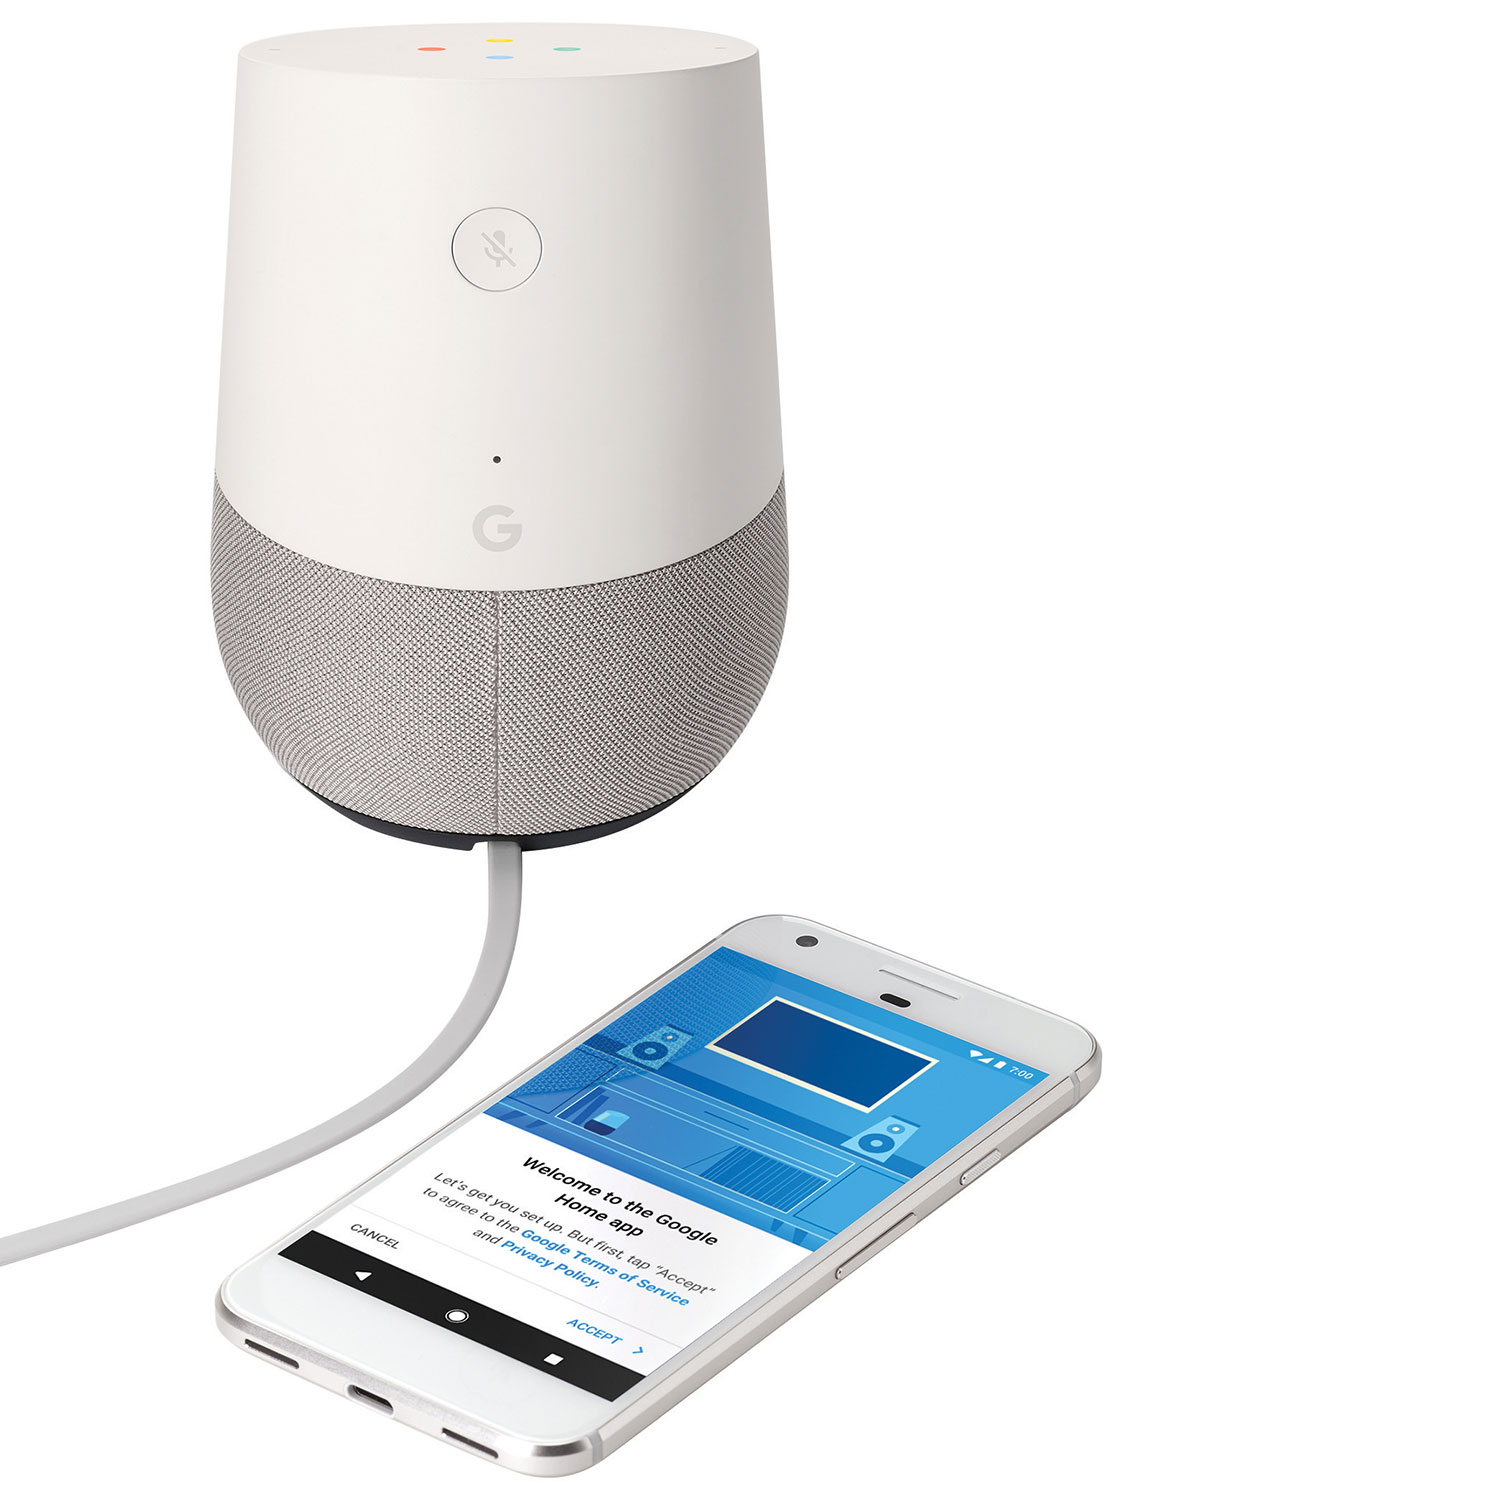 Where To Buy Google Home In Canada